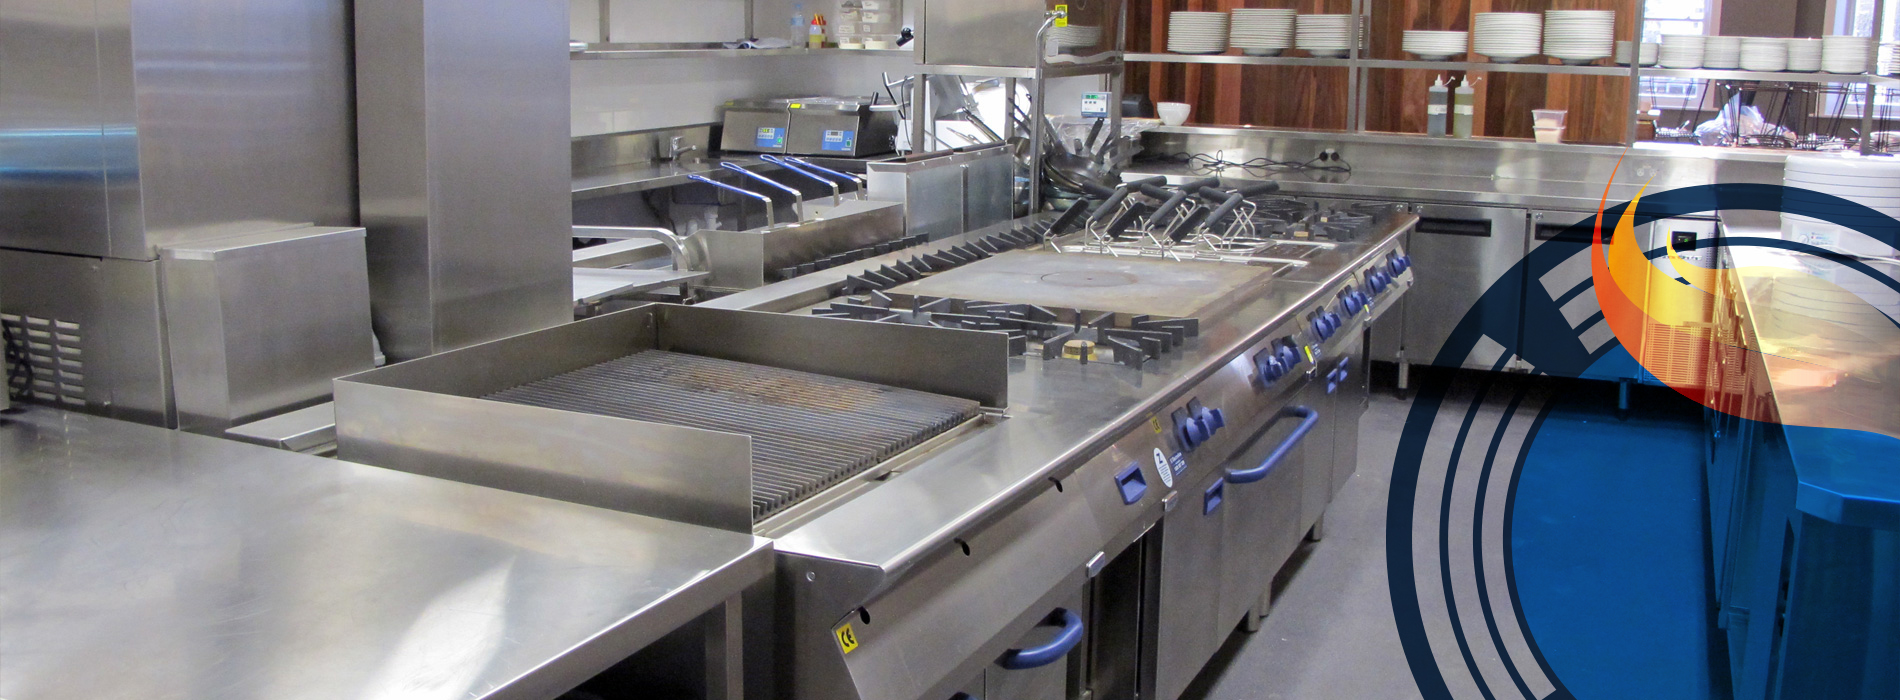 Catering Equipment Servicing Exeter Catering Equipment Maintenance Exeter Catering Equipment